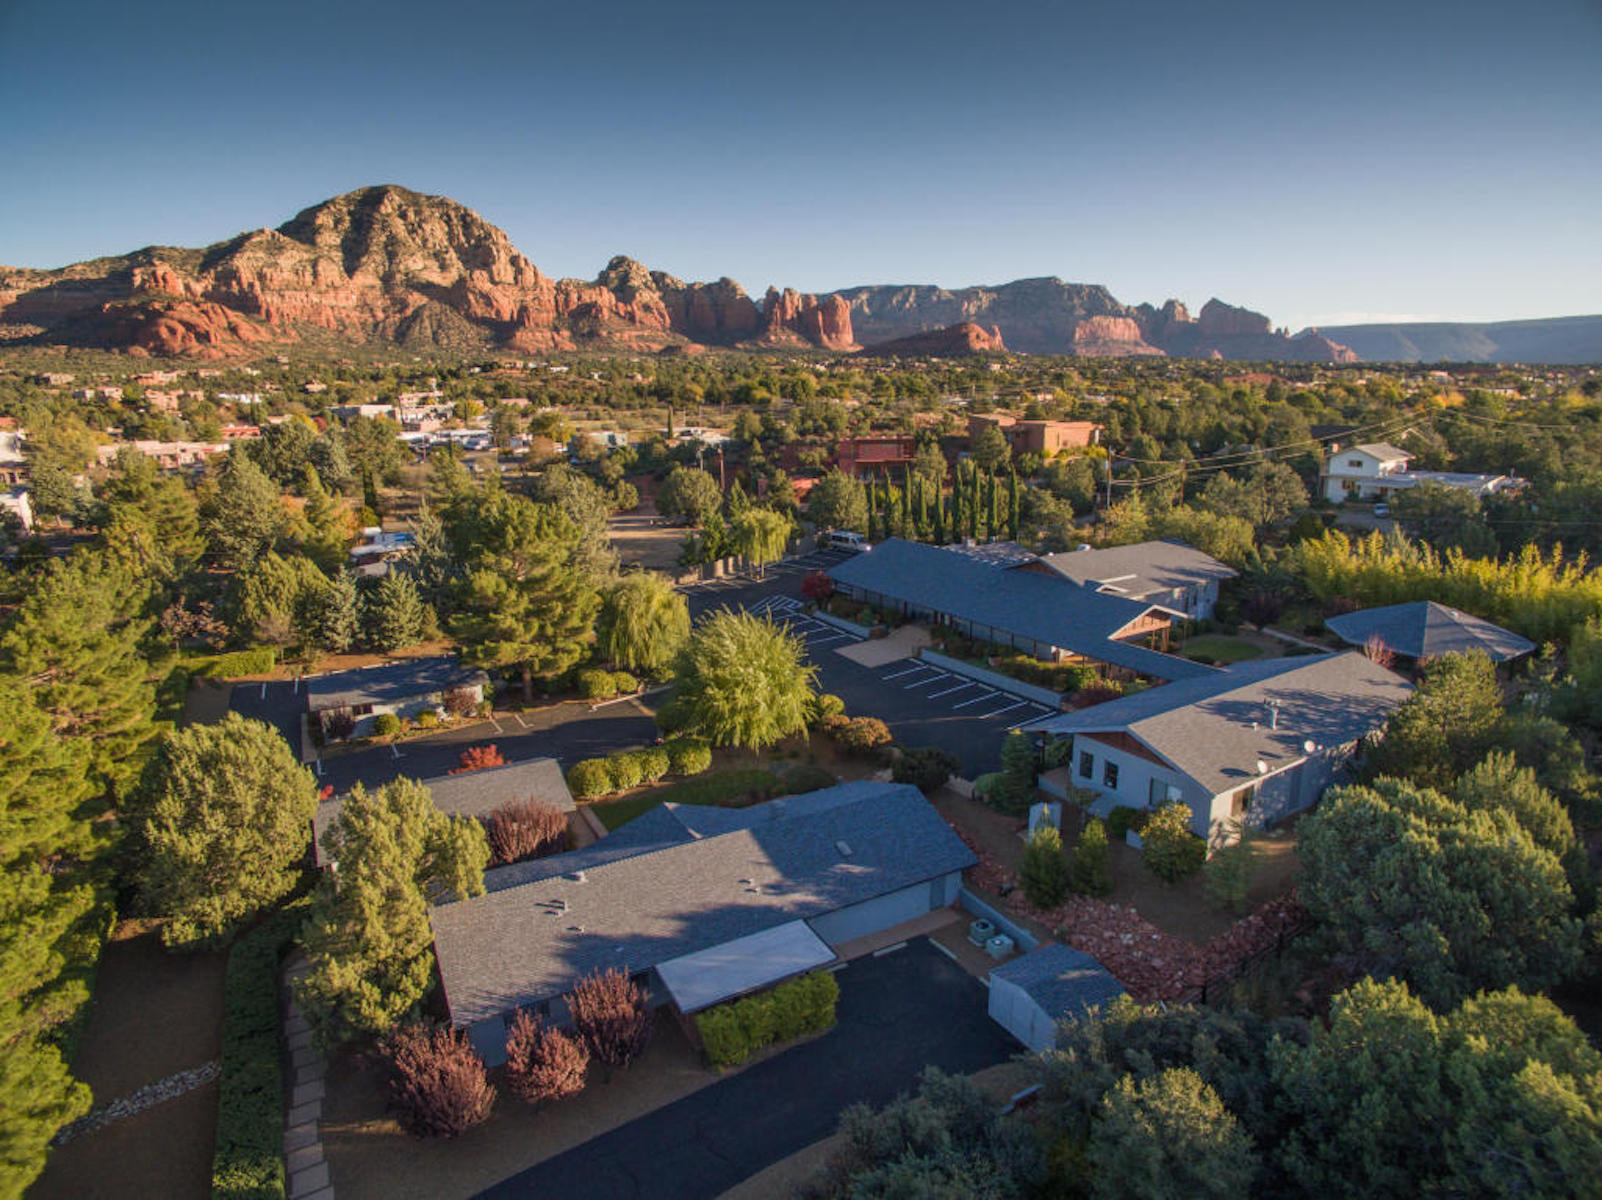 Single Family Home for Sale at A Sedona Campus 120 Deer Trail Drive Sedona, Arizona, 86336 United States